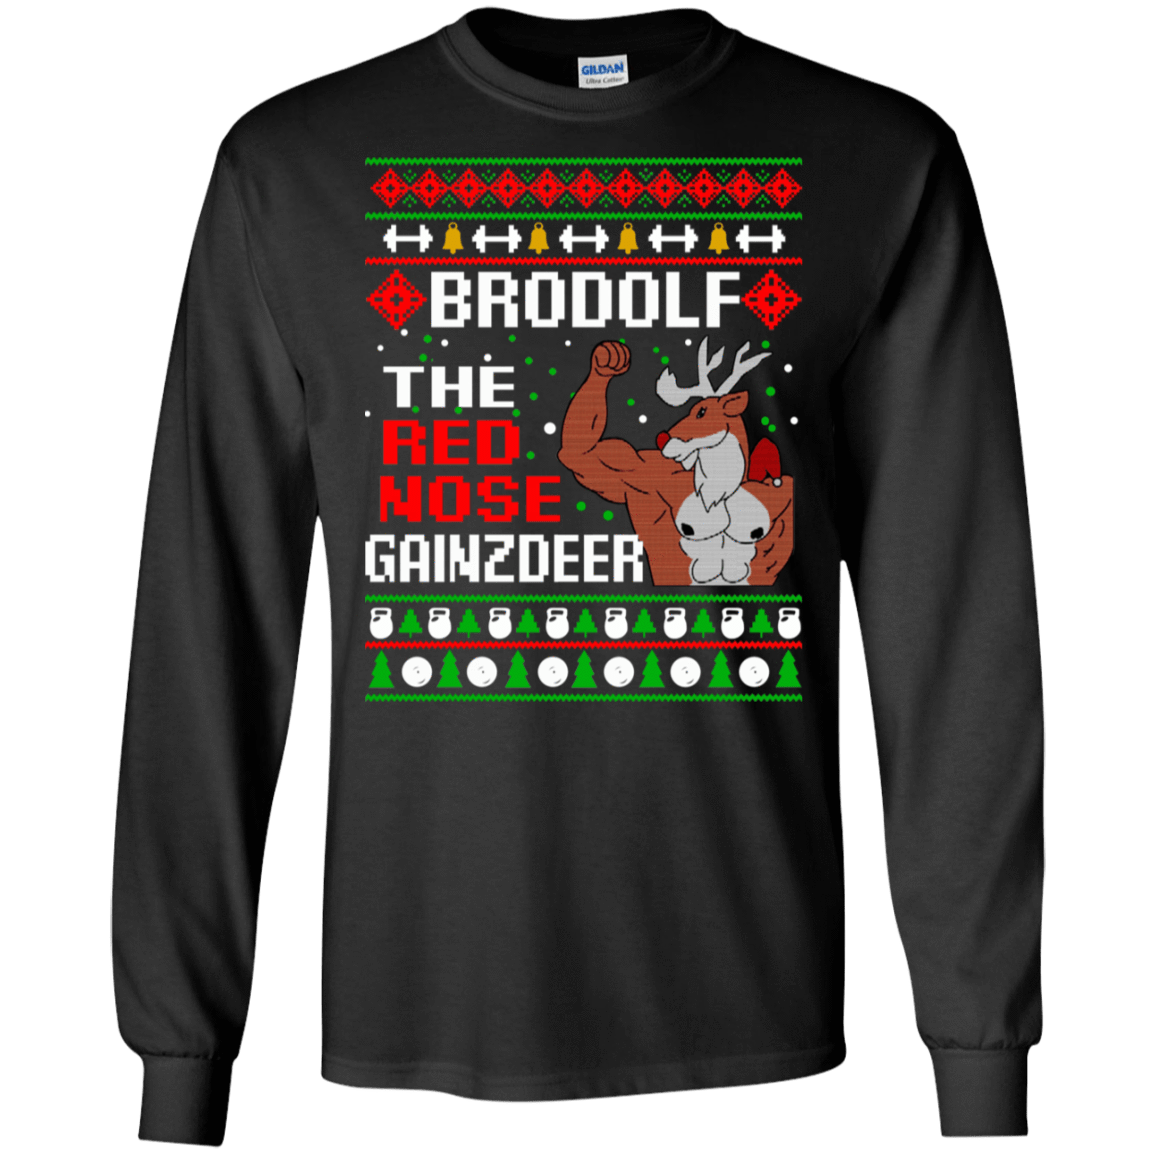 Brodolf The Red Nose Gainzdeer Christmas Sweater, T-Shirts & Hoodies 30-186-73888883-333 - Tee Ript